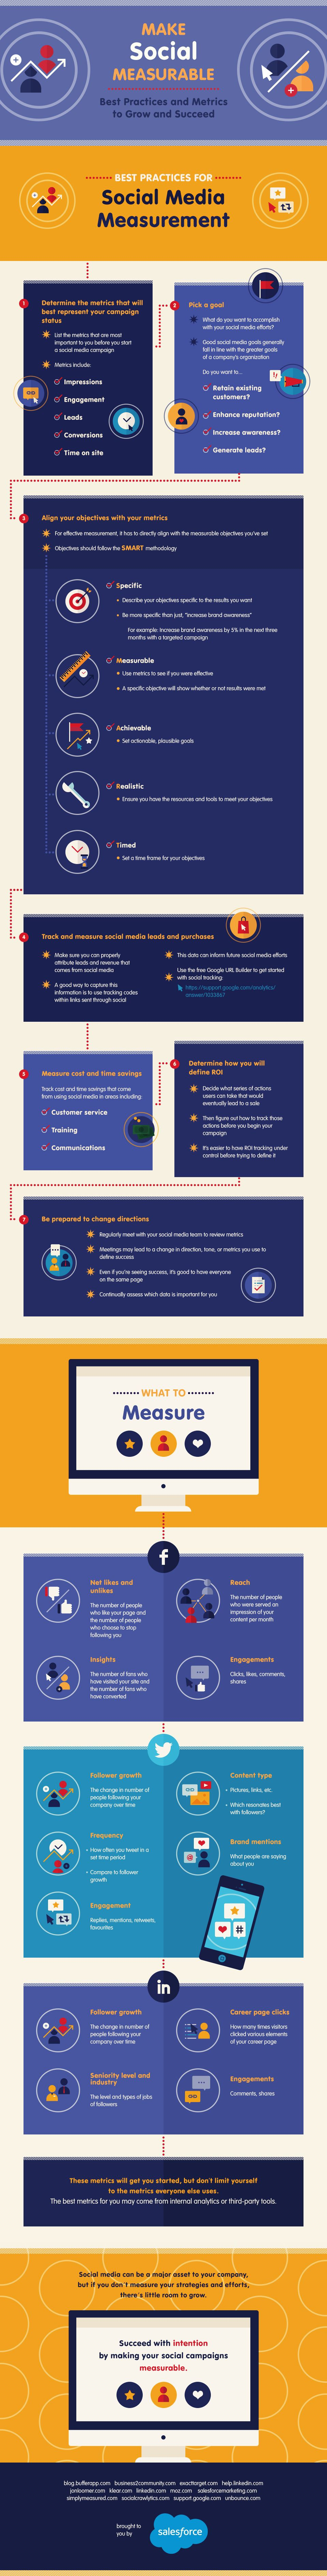 Make Social Measurable: Best Practices and Metrics to Grow and Succeed #infographic